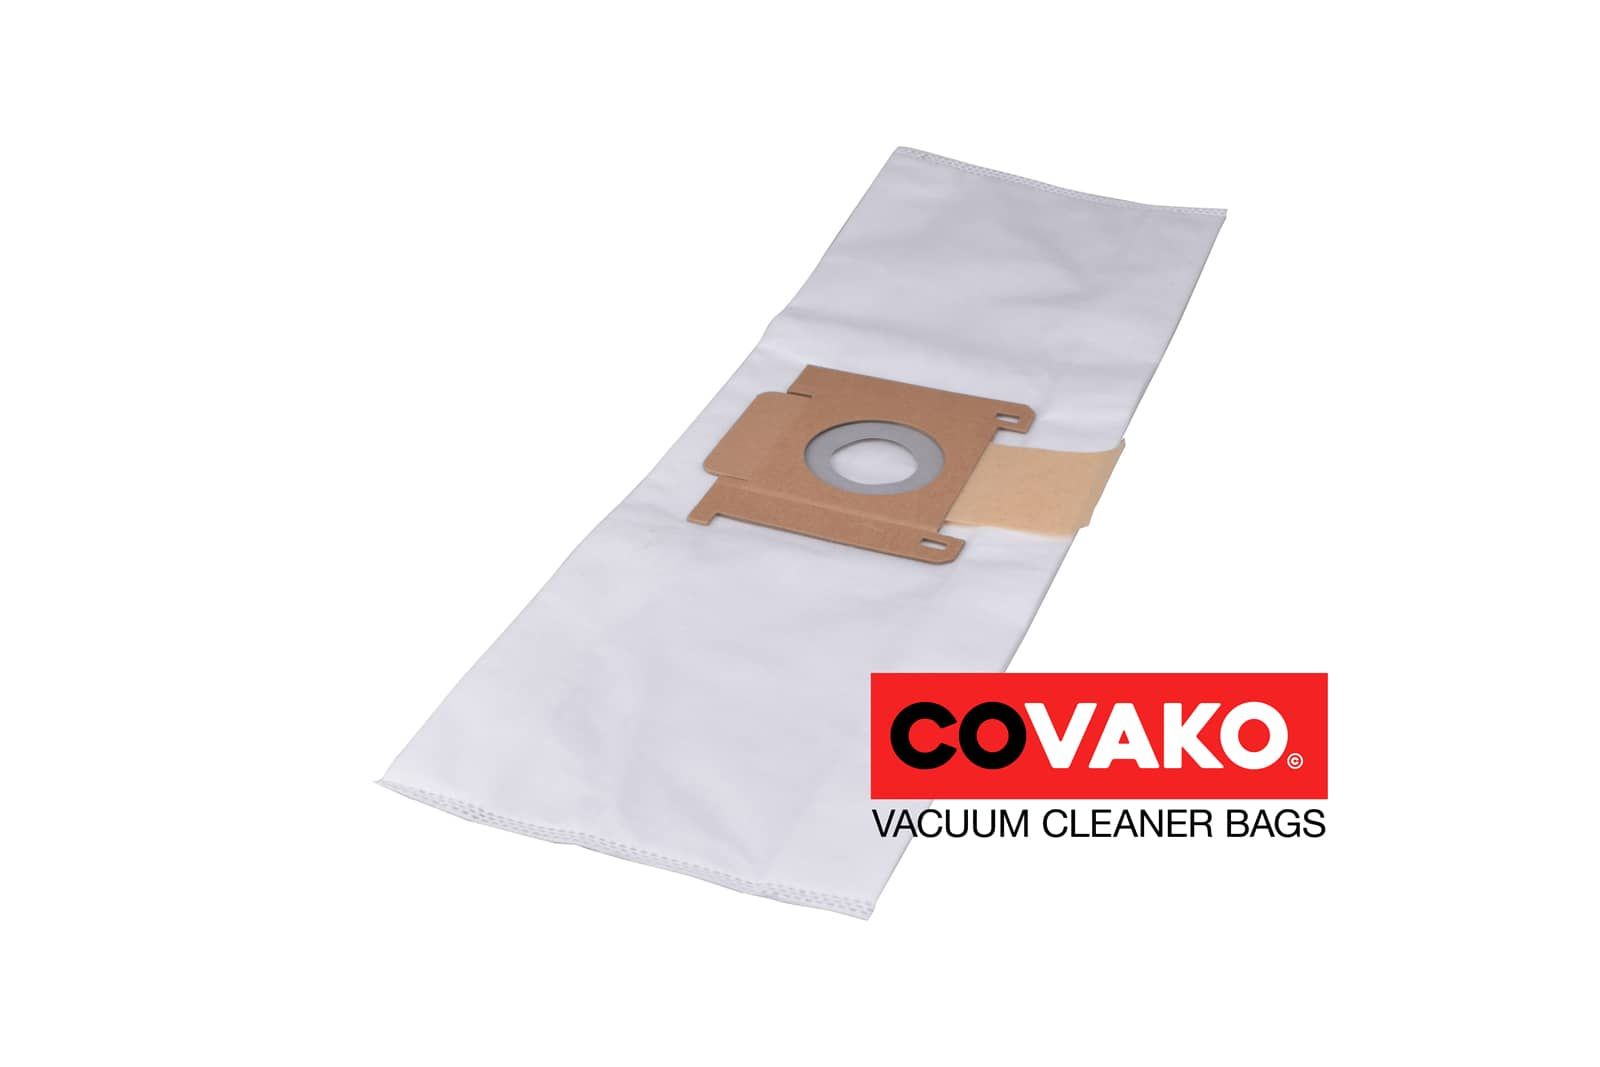 Fast C 5 / Synthesis - Fast vacuum cleaner bags